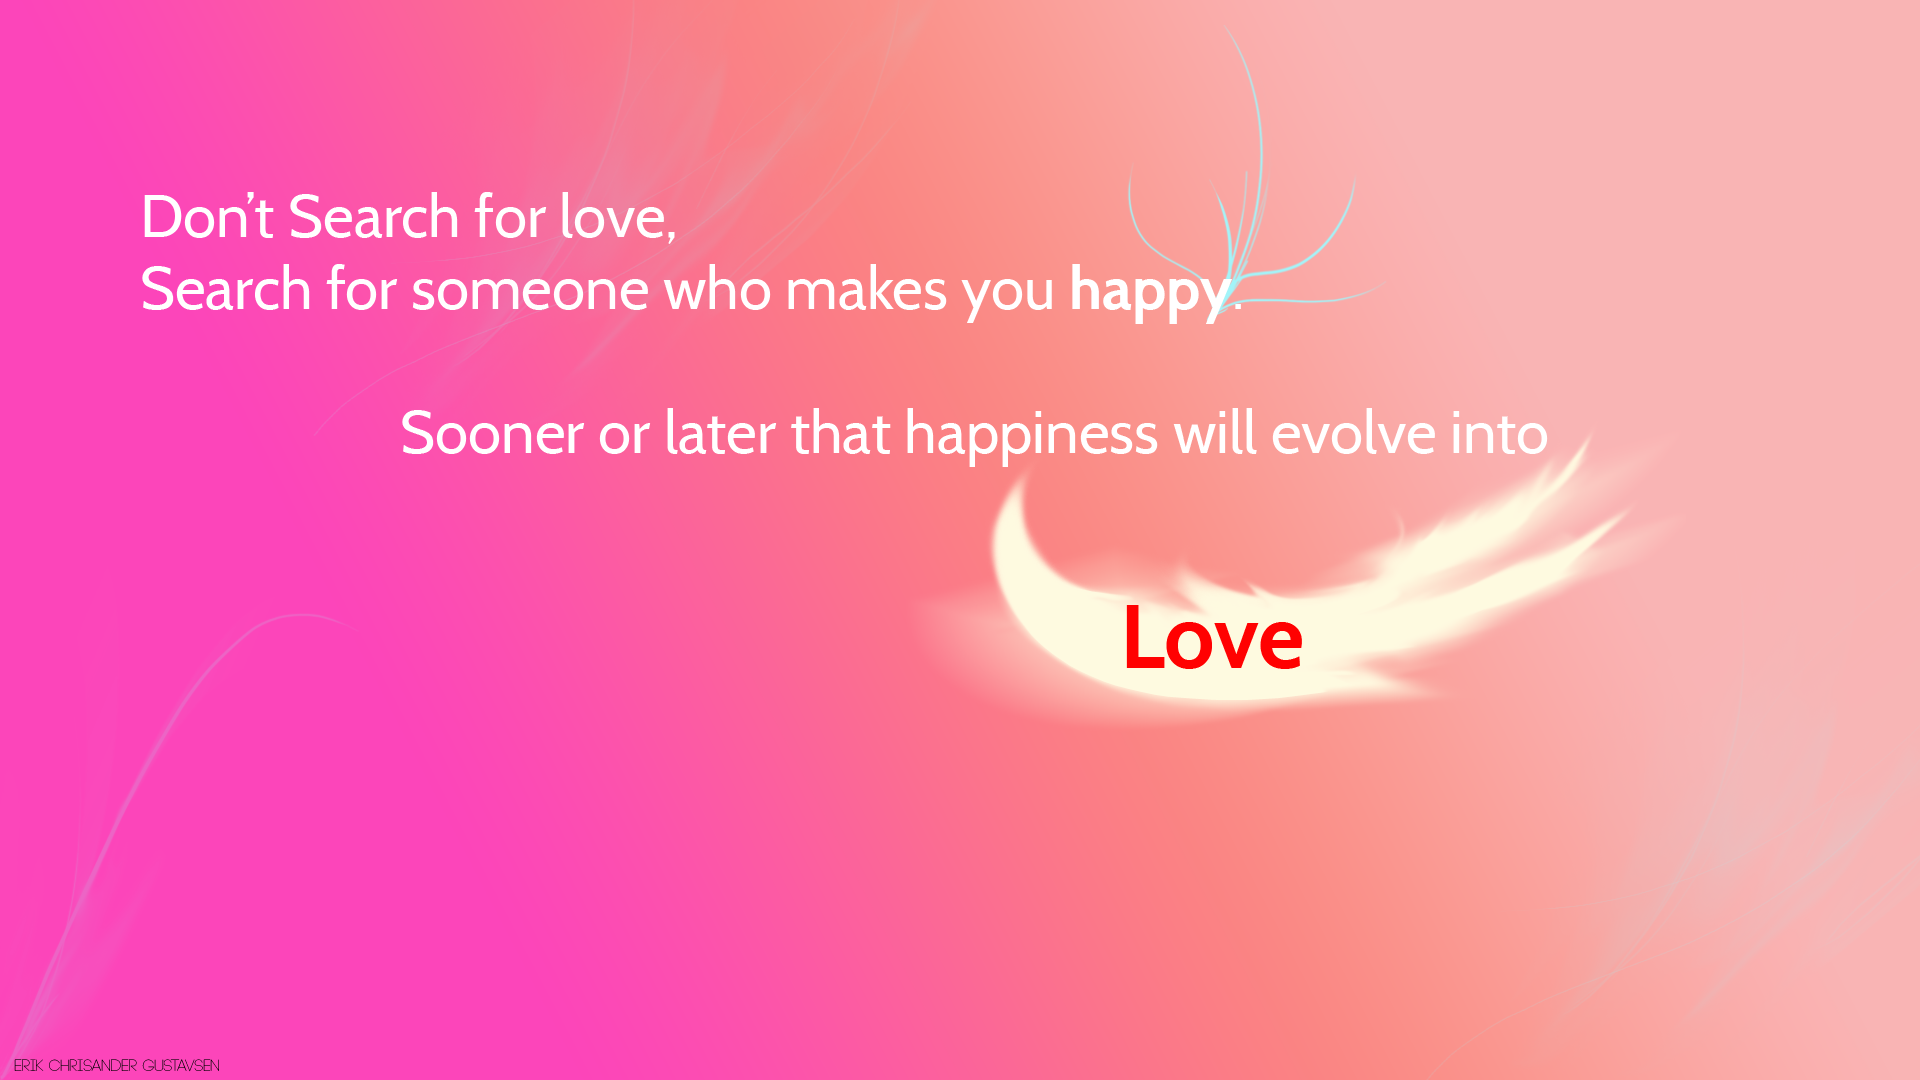 Love Wallpapers With Quotes In English : Best Love Quotes Wallpapers - WallpaperSafari